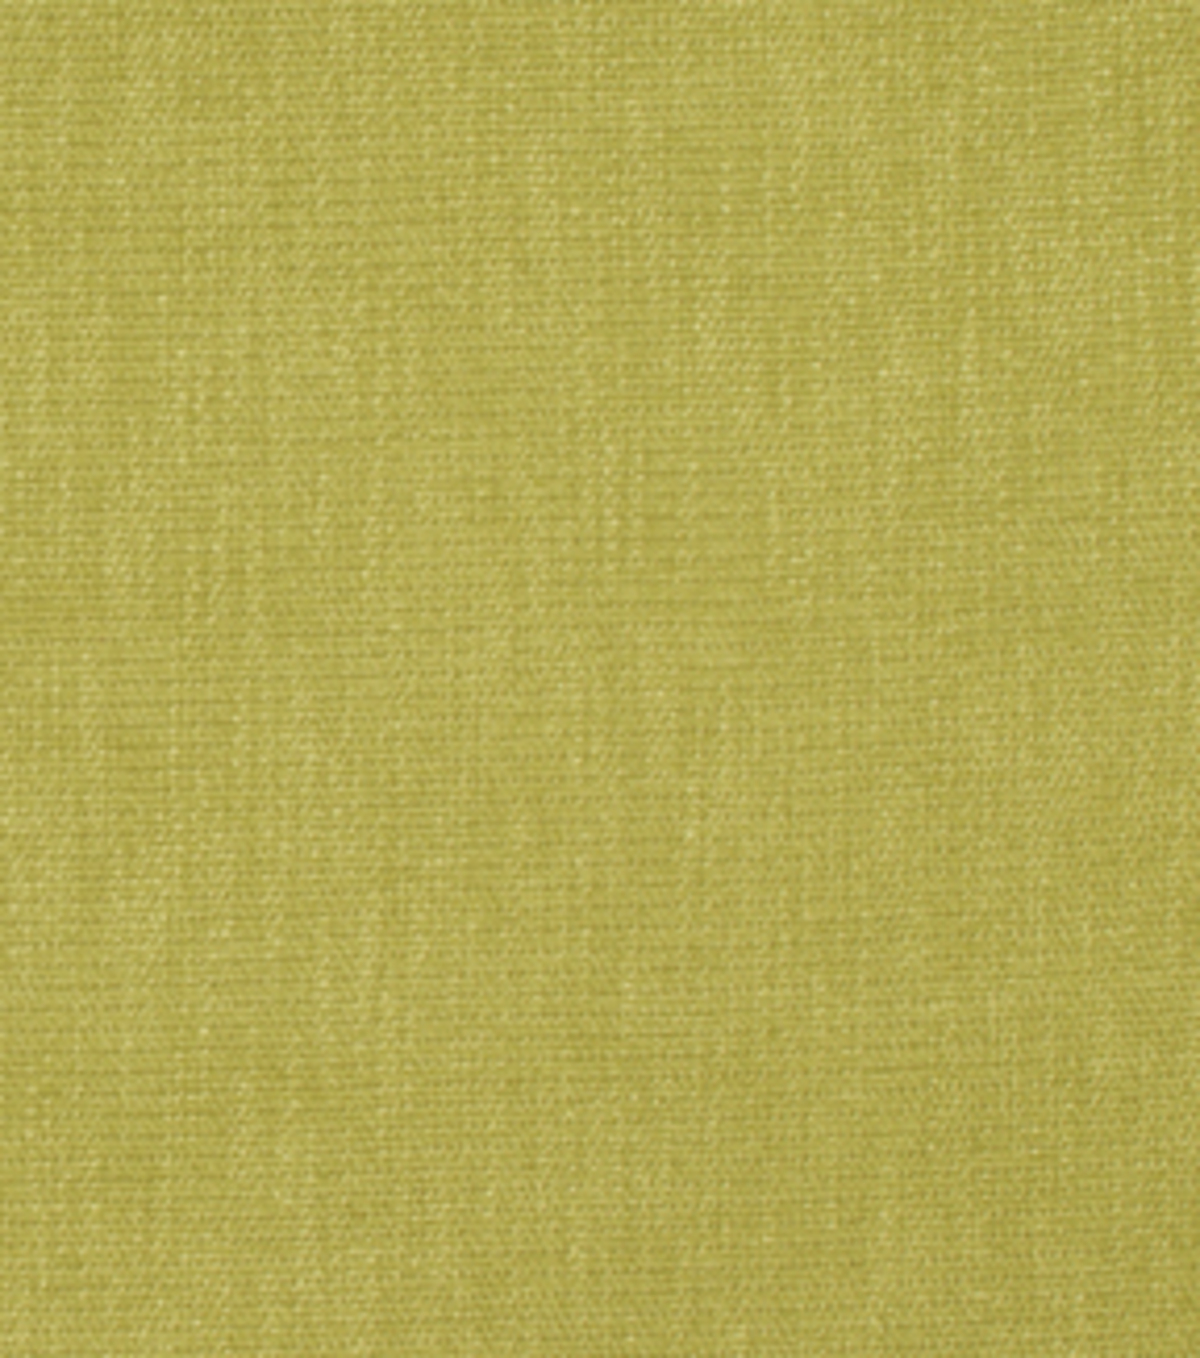 Home Decor 8\u0022x8\u0022 Fabric Swatch-Richloom Studio Hogan Sprout